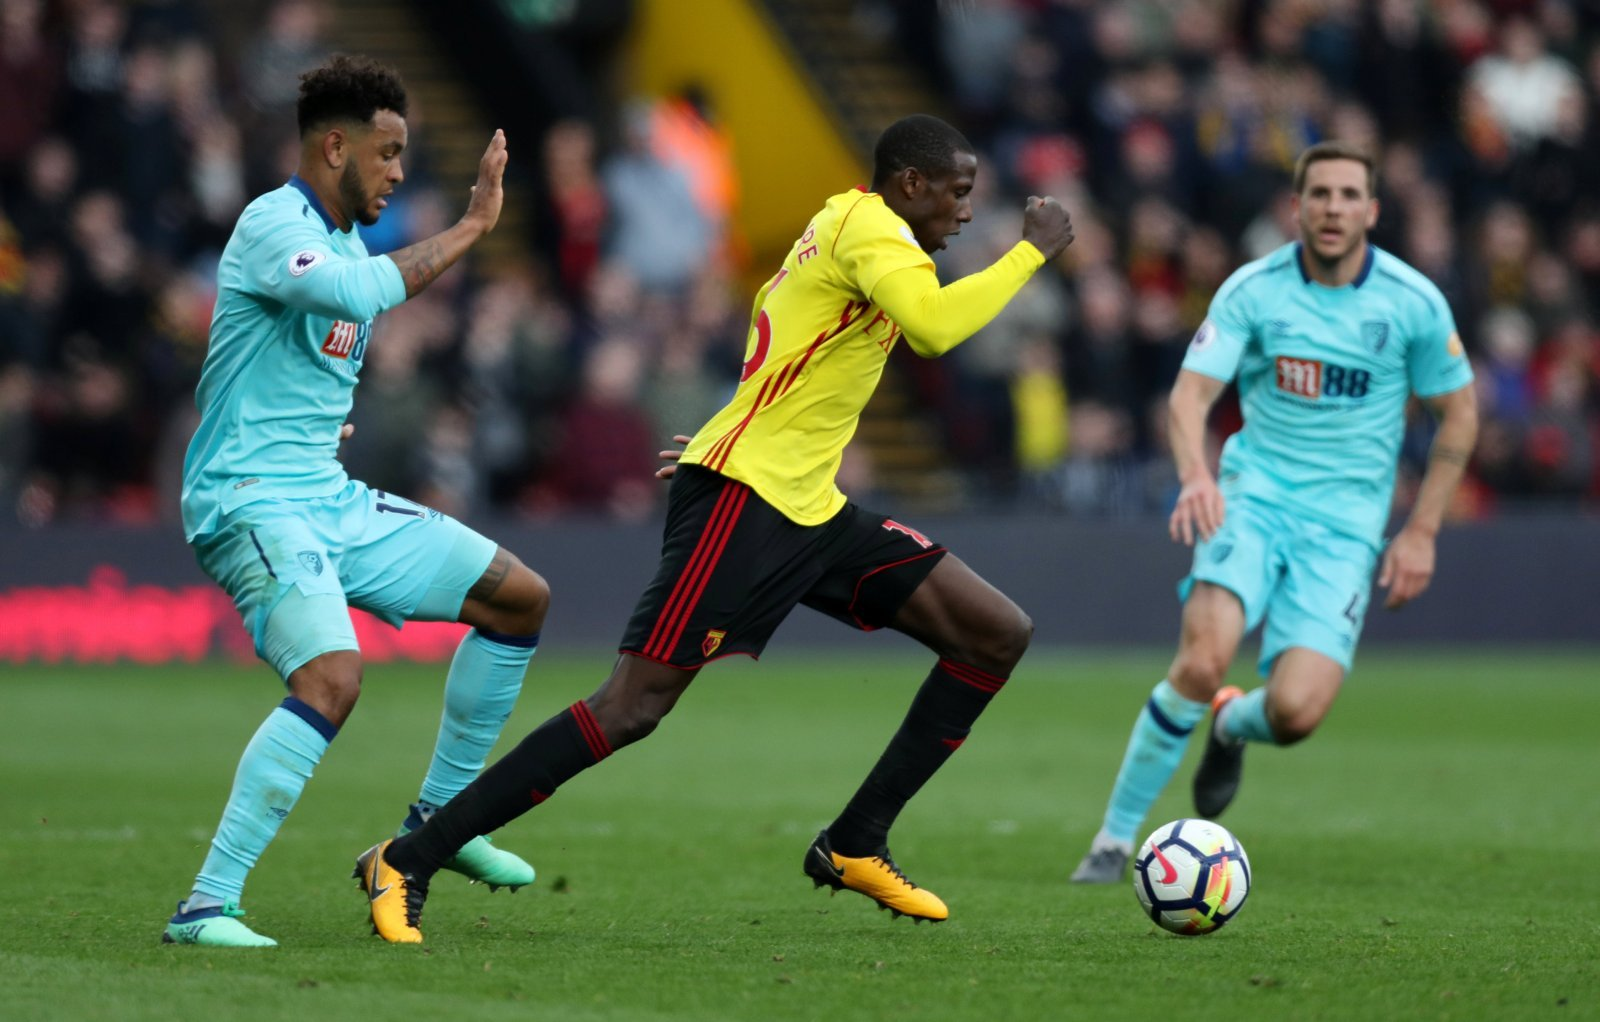 Chelsea should have fought for Doucoure to replace Bakayoko